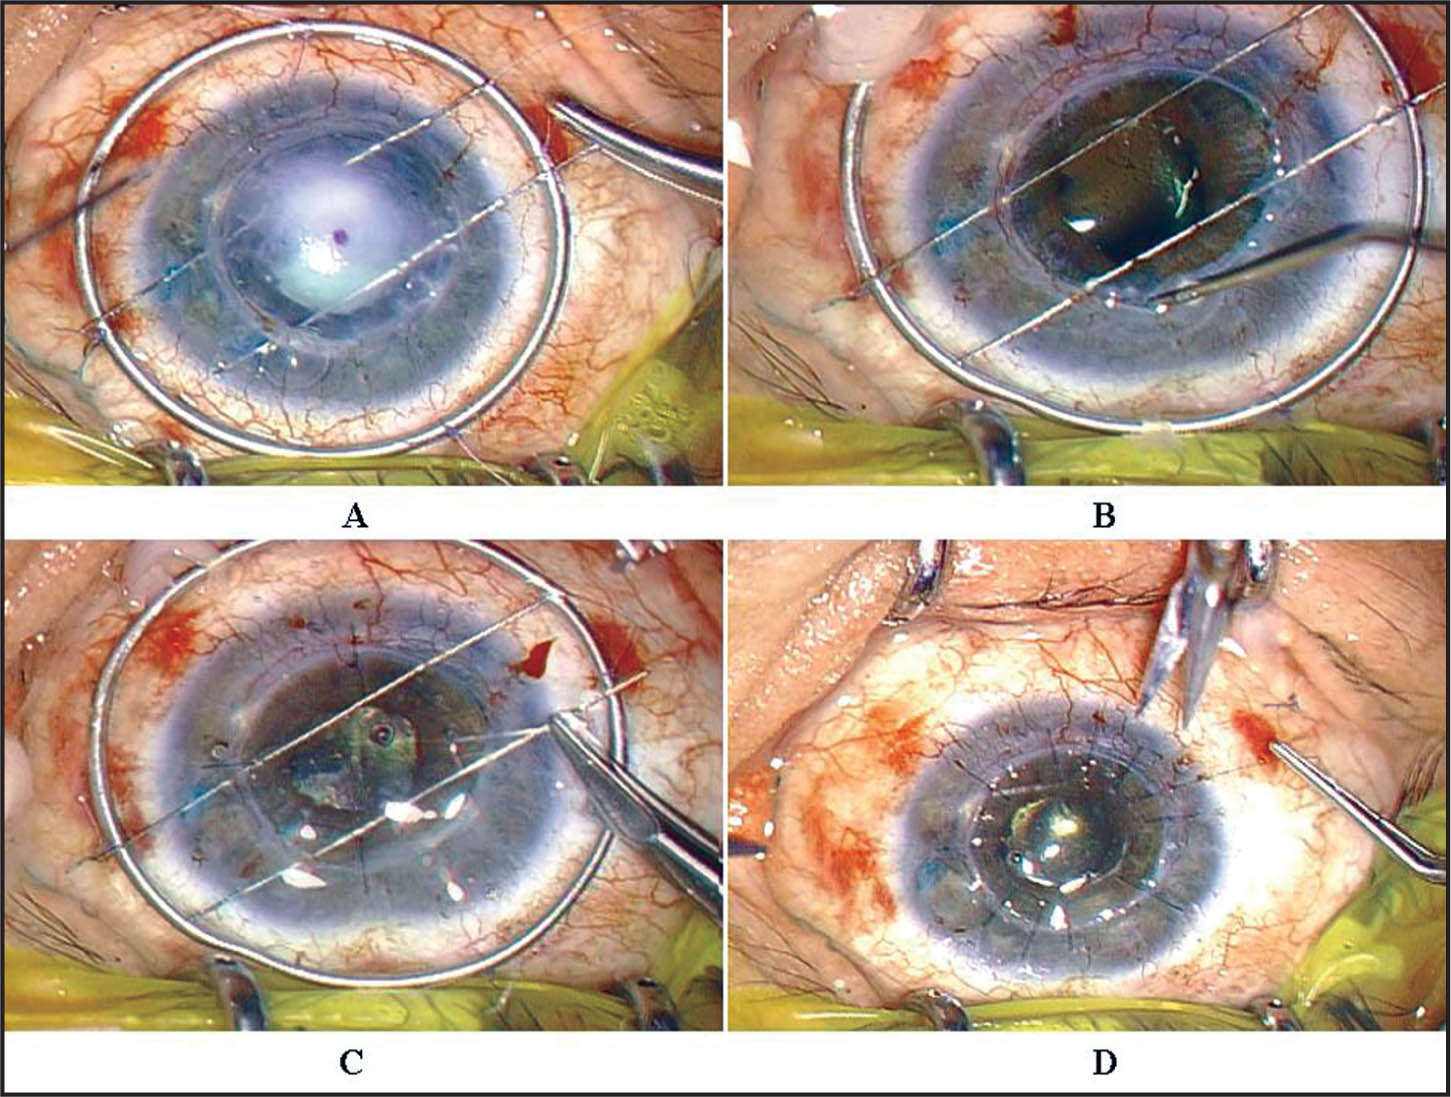 "The ""double-Needle"" Technique for Triple Surgery. (A) Two Needles Were Inserted into the Recipient Bed. (B) After Removal of the Recipient Cornea, the Lens Was Removed by Phacoemulsification and an Intraocular Lens Was Implanted in the Bag Without Difficulty. (C) Cardinal Suturing Was Performed. (D) The Needles Were Removed from the Recipient Bed and the Donor Cornea Was Secured with 10-0 Nylon."